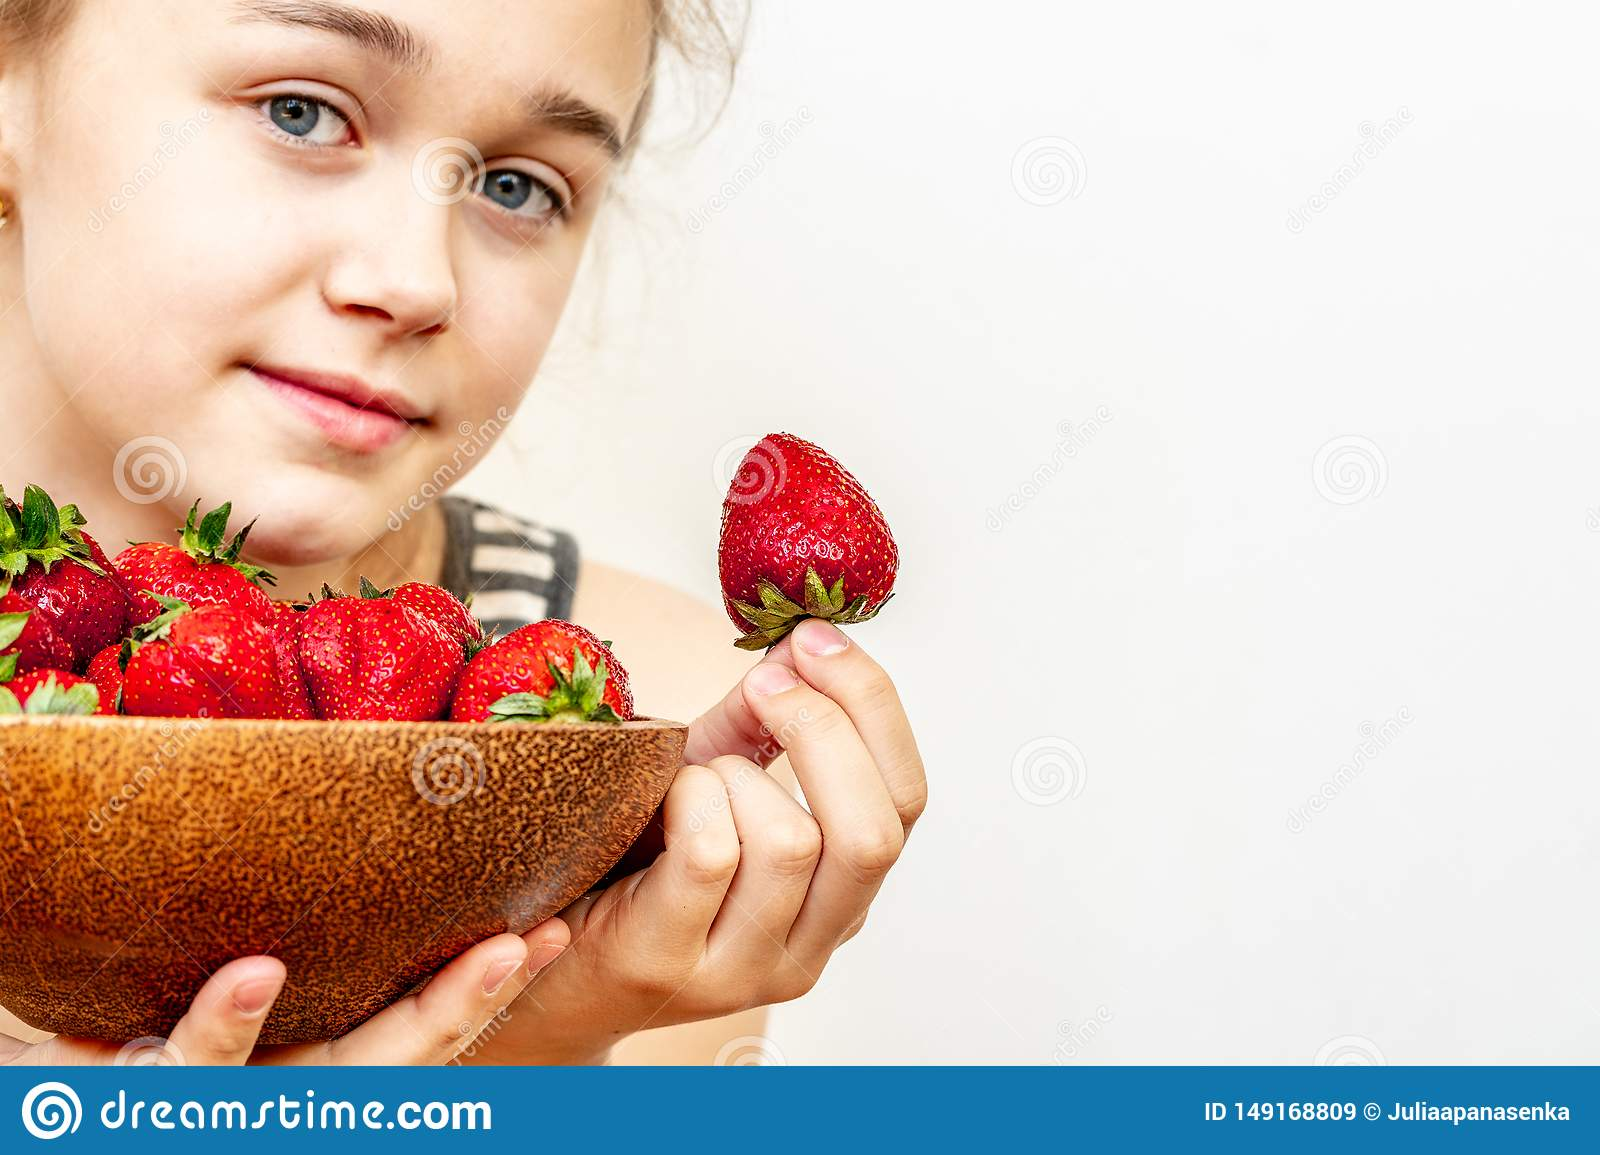 A young woman is holding a bowl of strawberries